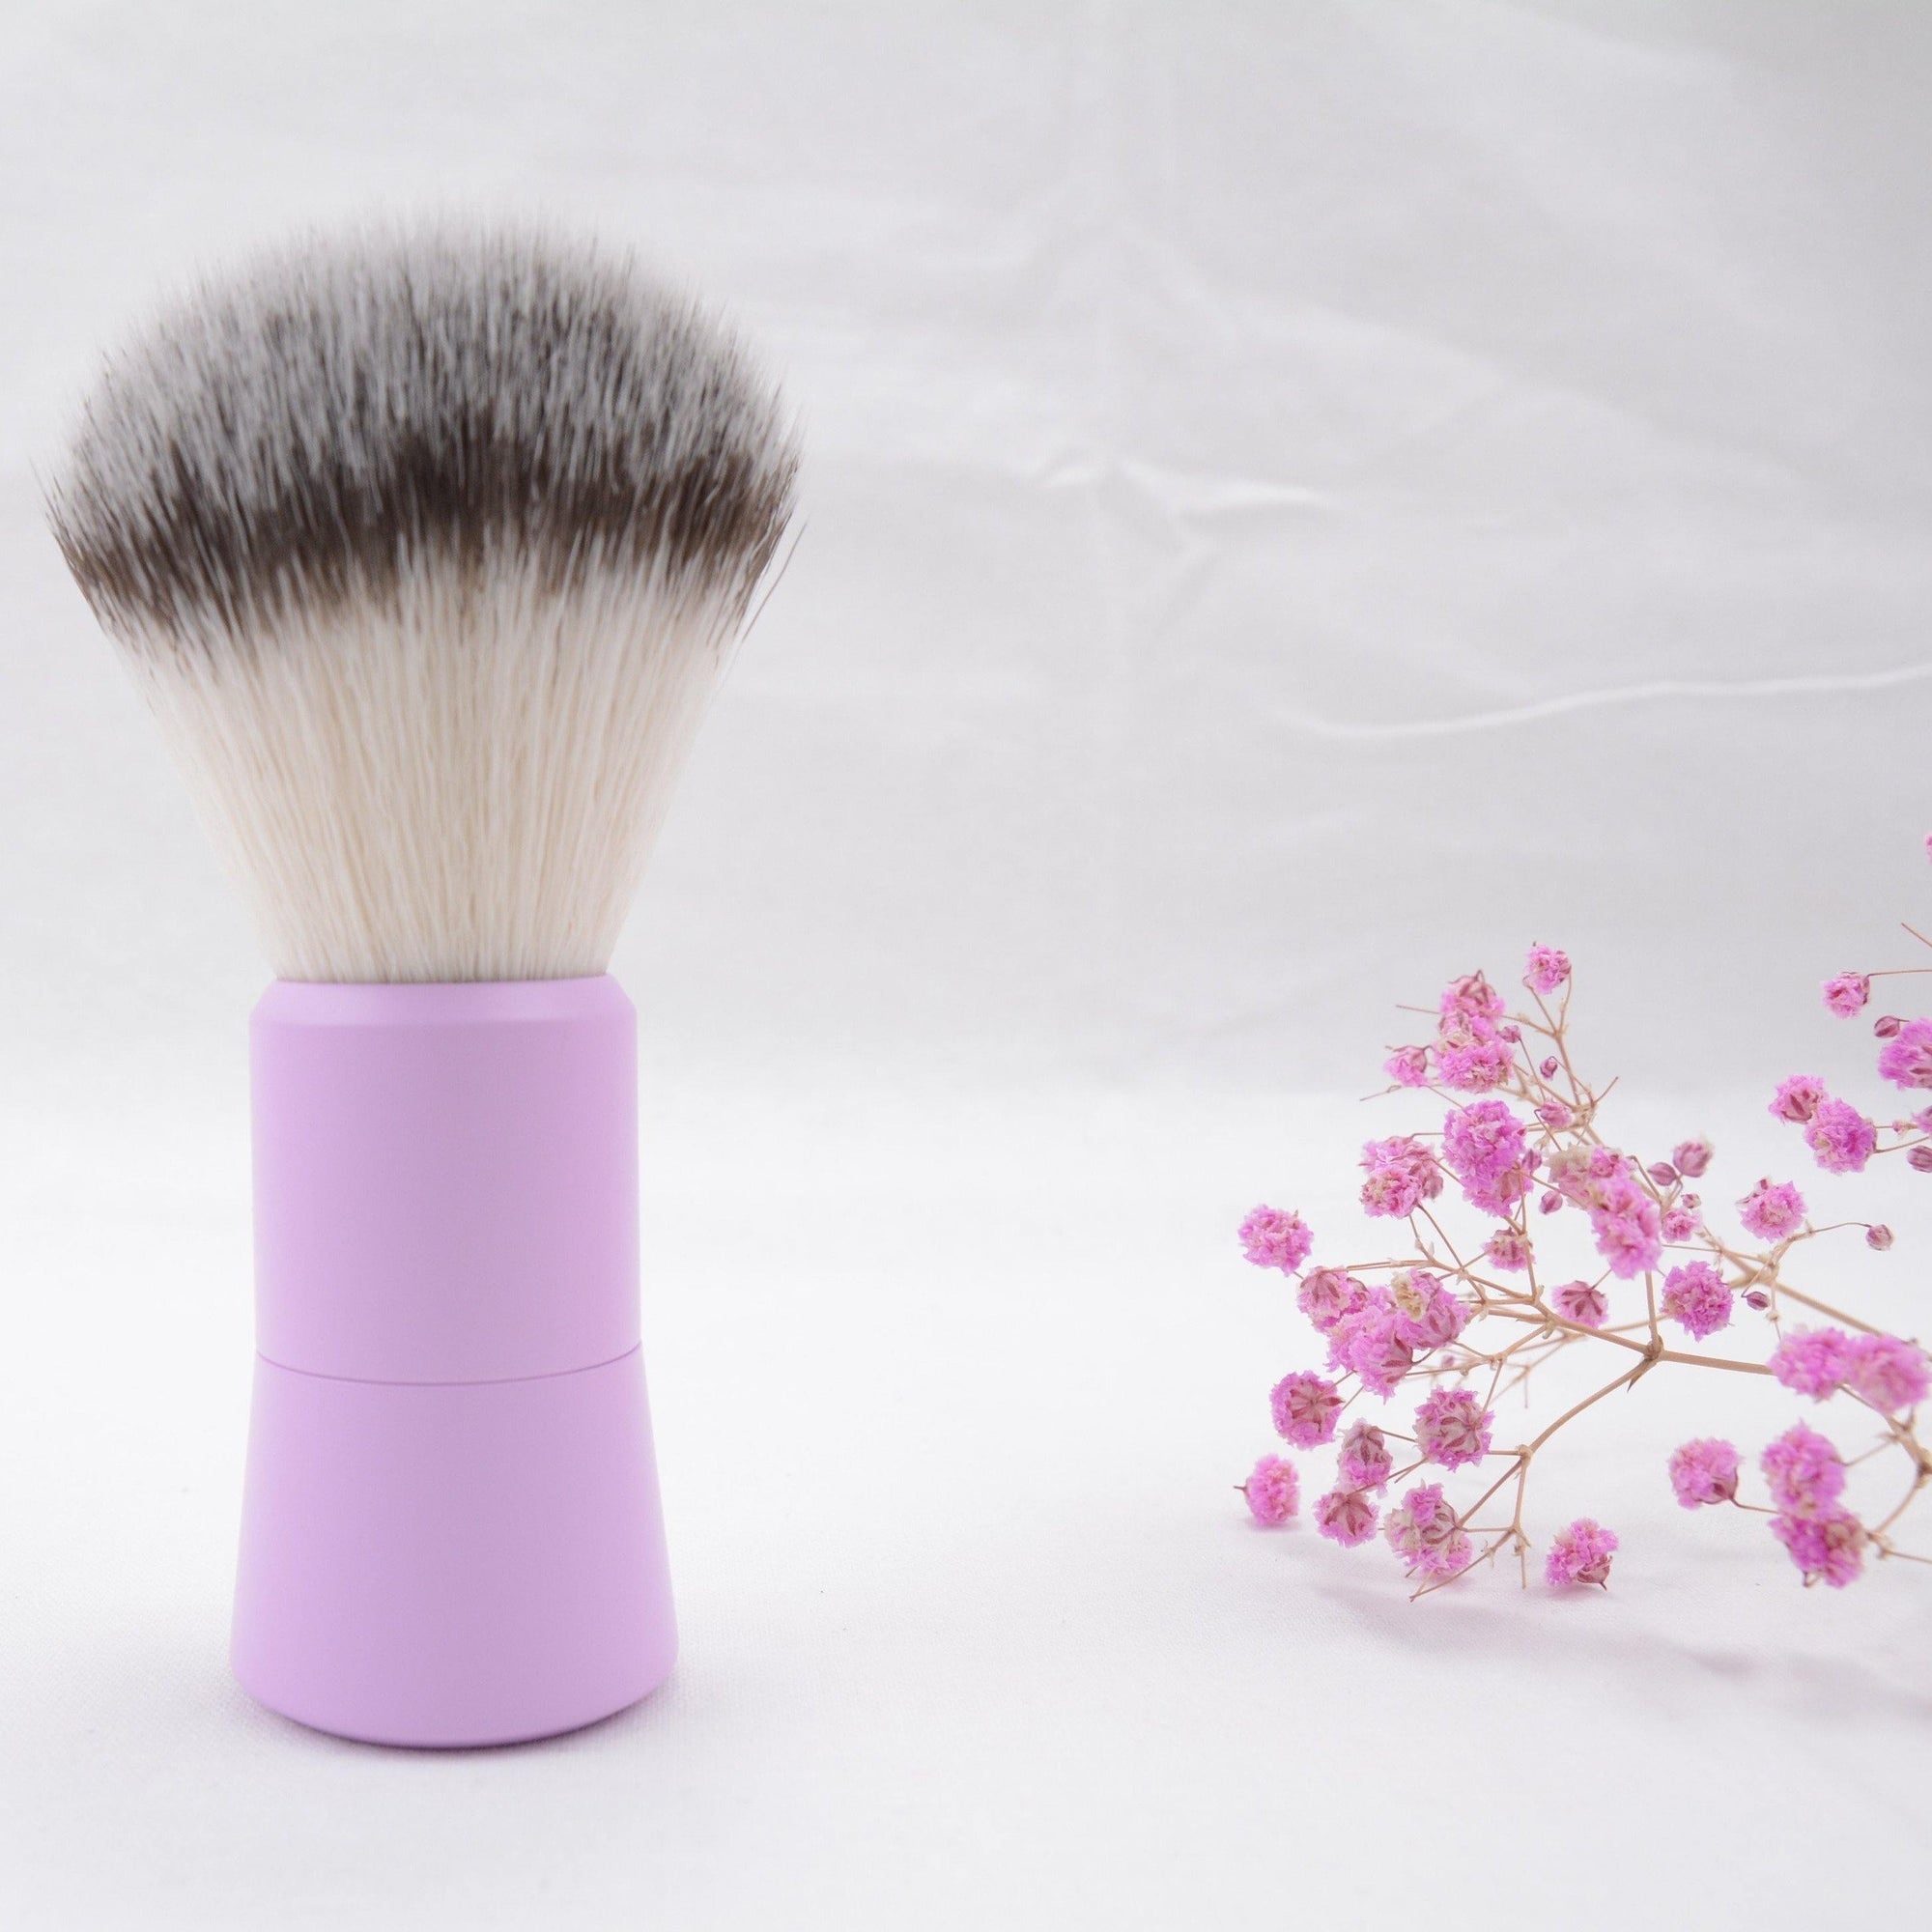 THE ULTIMATE PRETTY SHAVE BRUSH - Très Chic Shave Kit